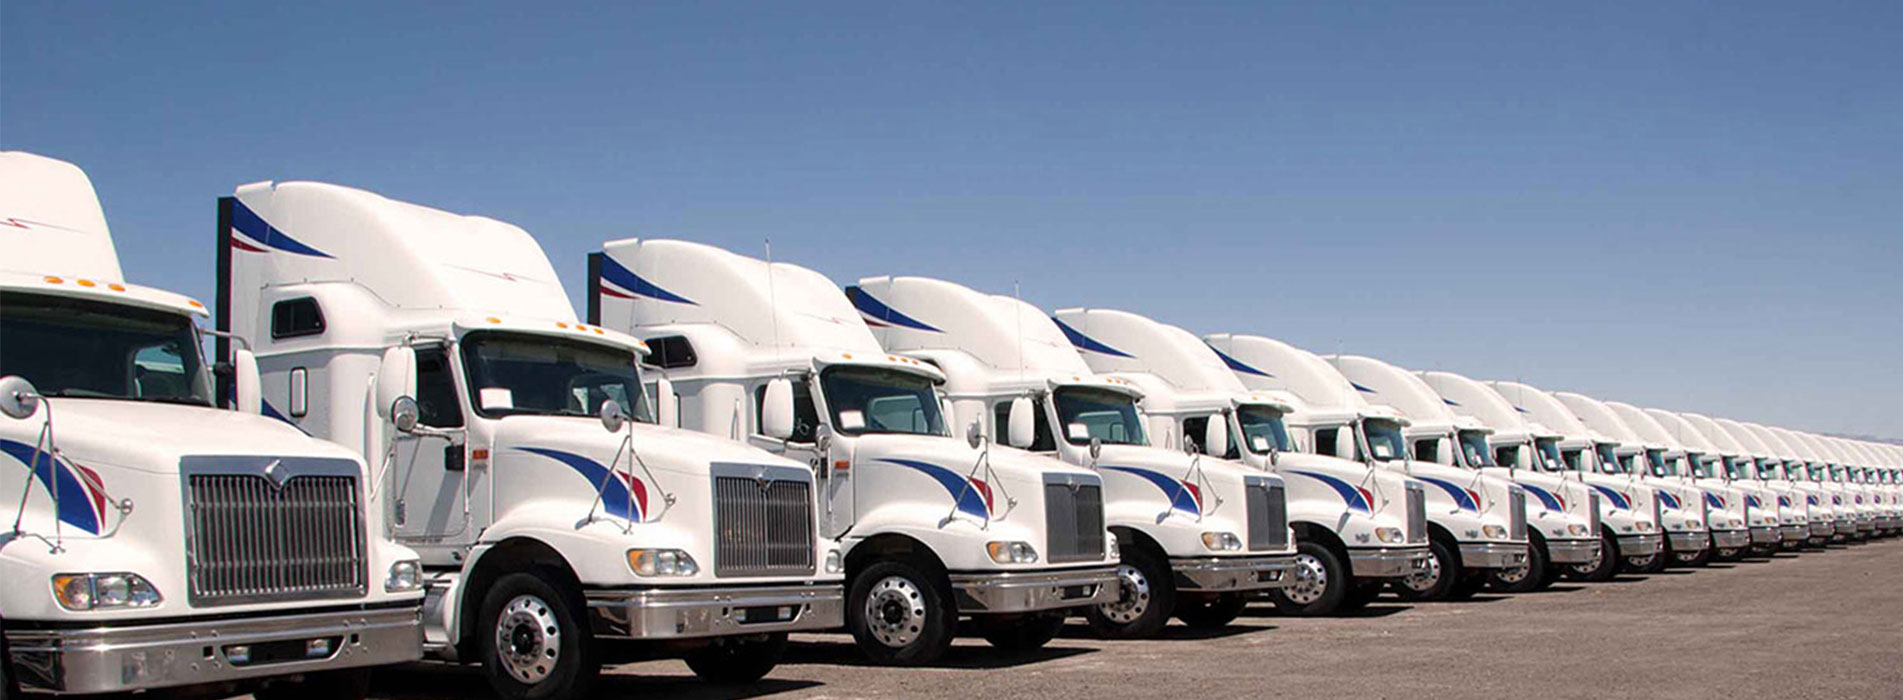 Florida Trucking insurance coverage